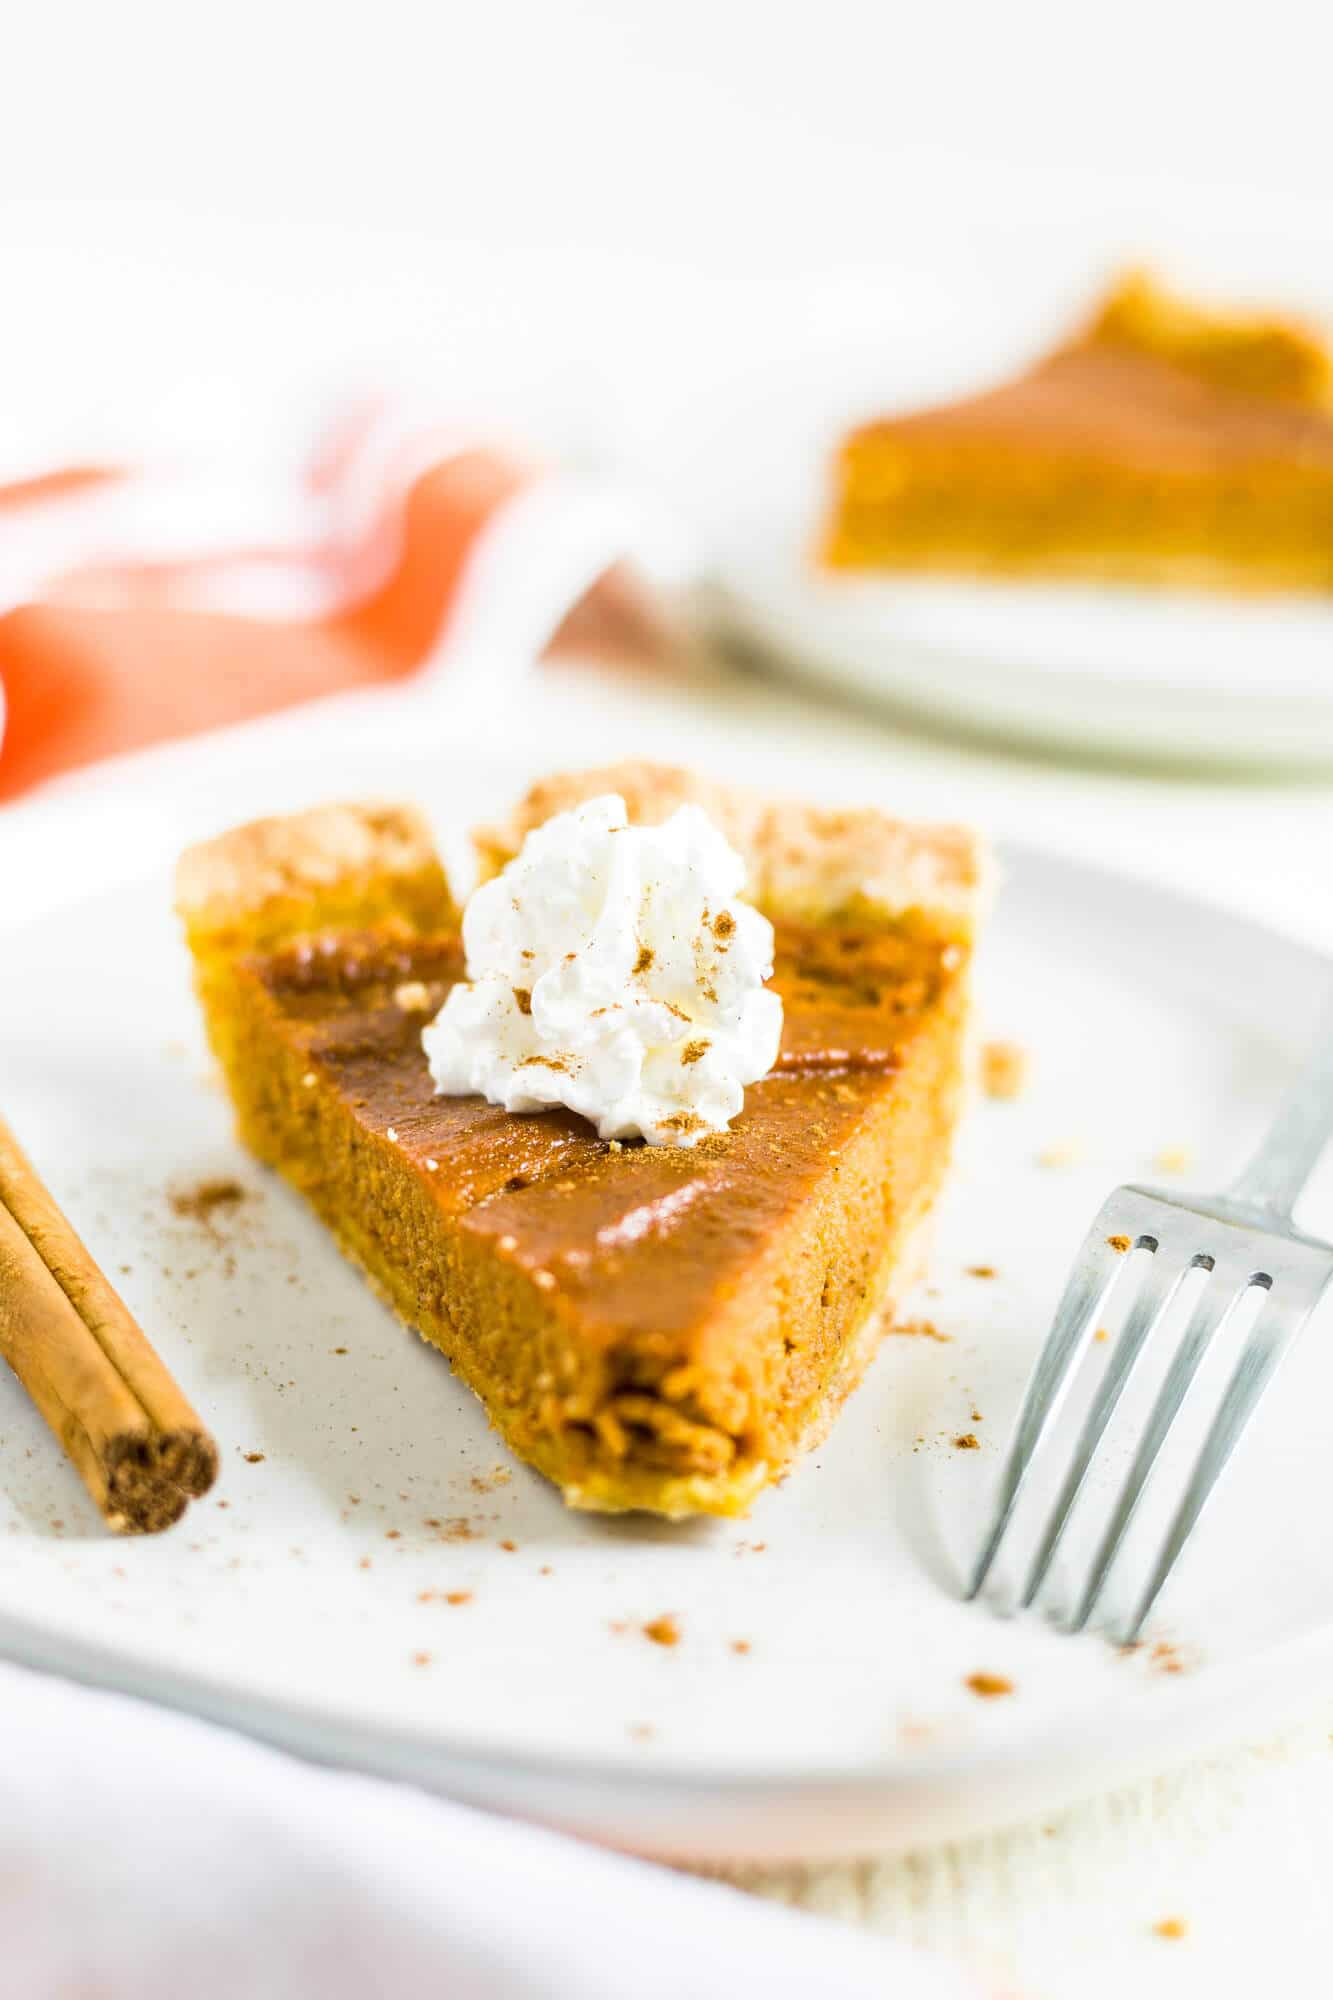 gluten and dairy free pumpkin pie sliced perfectly sitting on a white plate with a dollop of whipped cream and cinnamon